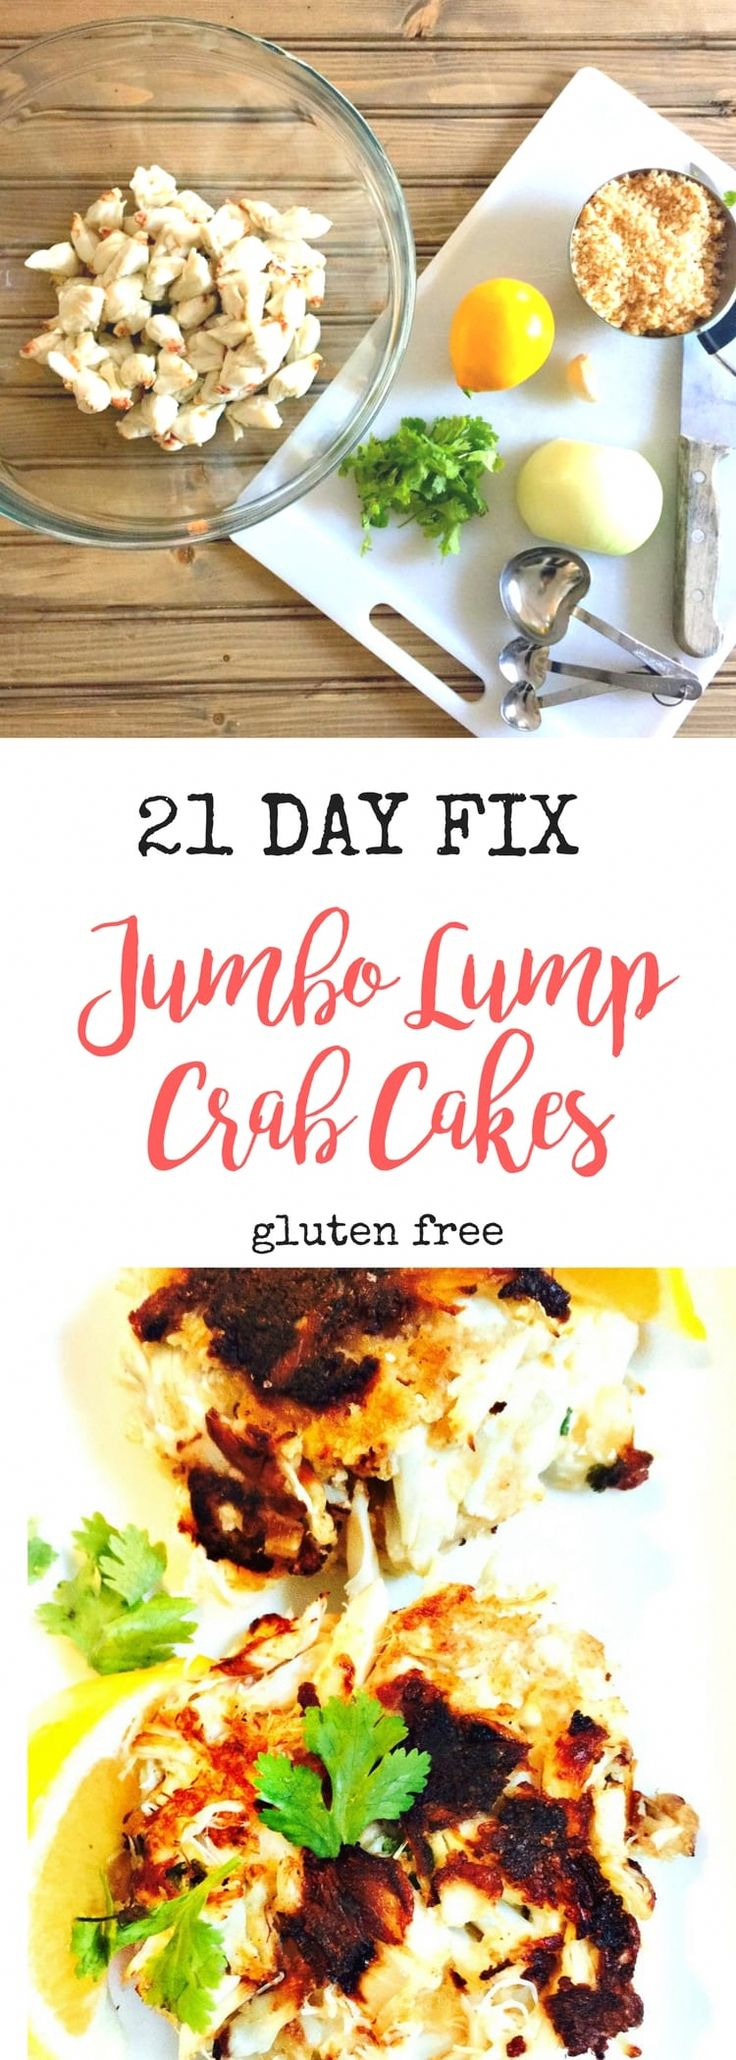 21 Day Fix Jumbo Lump Crab Cakes Gluten-free – Confessions of a Fit Foodie #CausesOfItchyBumpsOnSkin